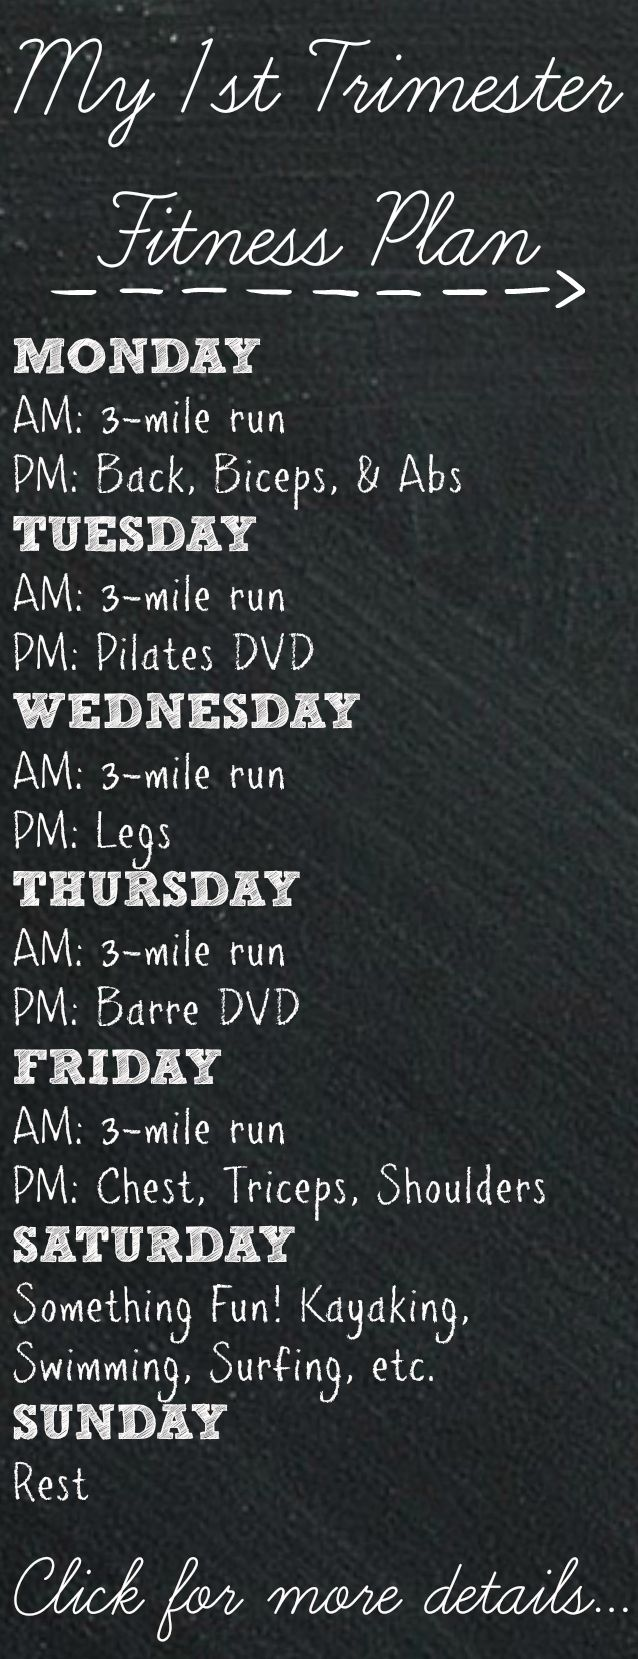 First Trimester Fitness Plan #fitpregnancy....If I can run before the next pregnancy, I will do this!